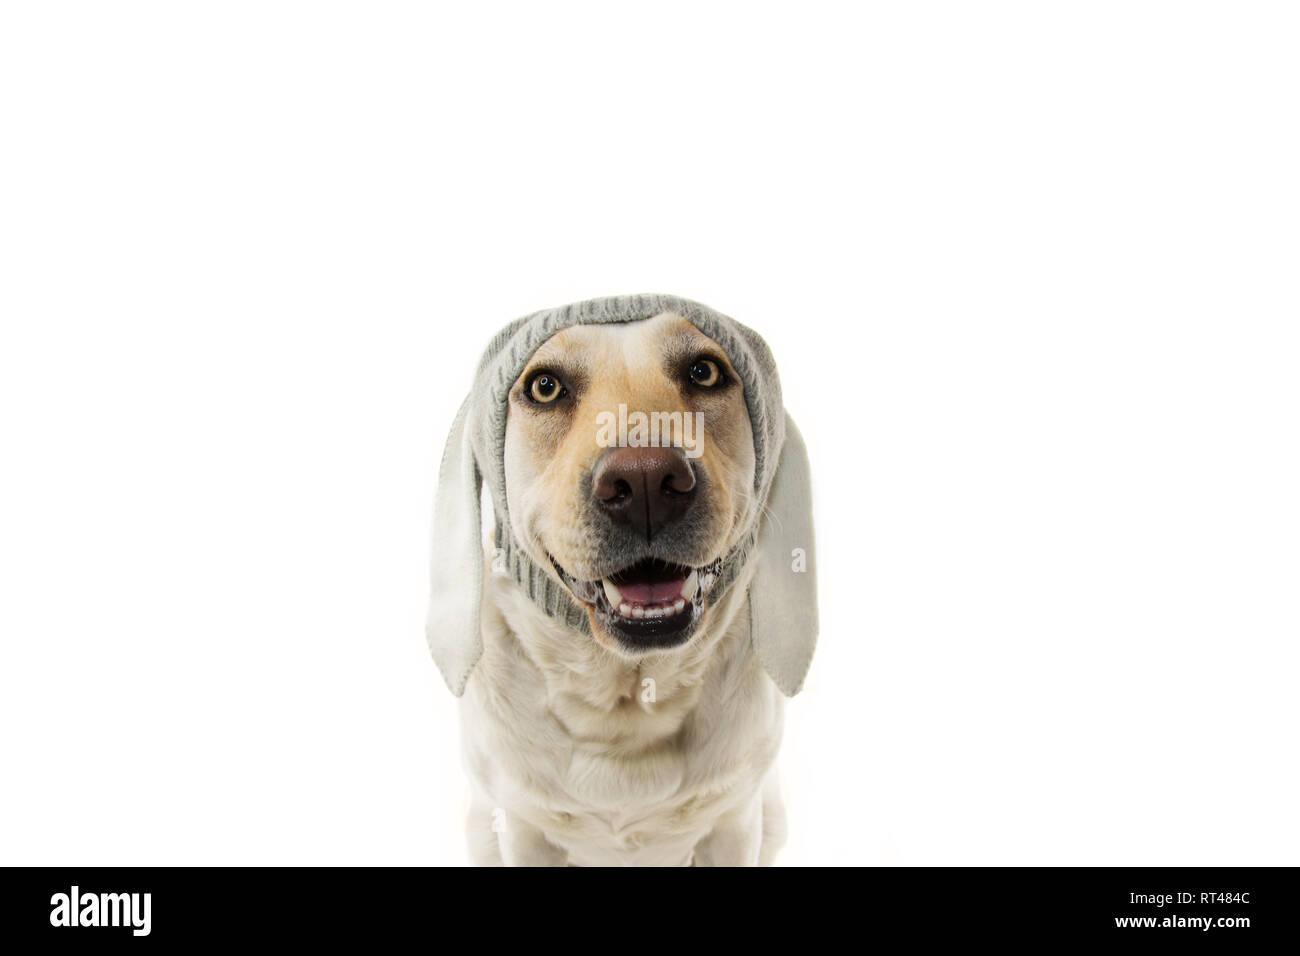 FUNNY EASTER DOG. LABRADOR RETRIEVER PUPPY WITH RABBIT EARS. ISOLATED AGAINST WHITE BACKGROUND. - Stock Image